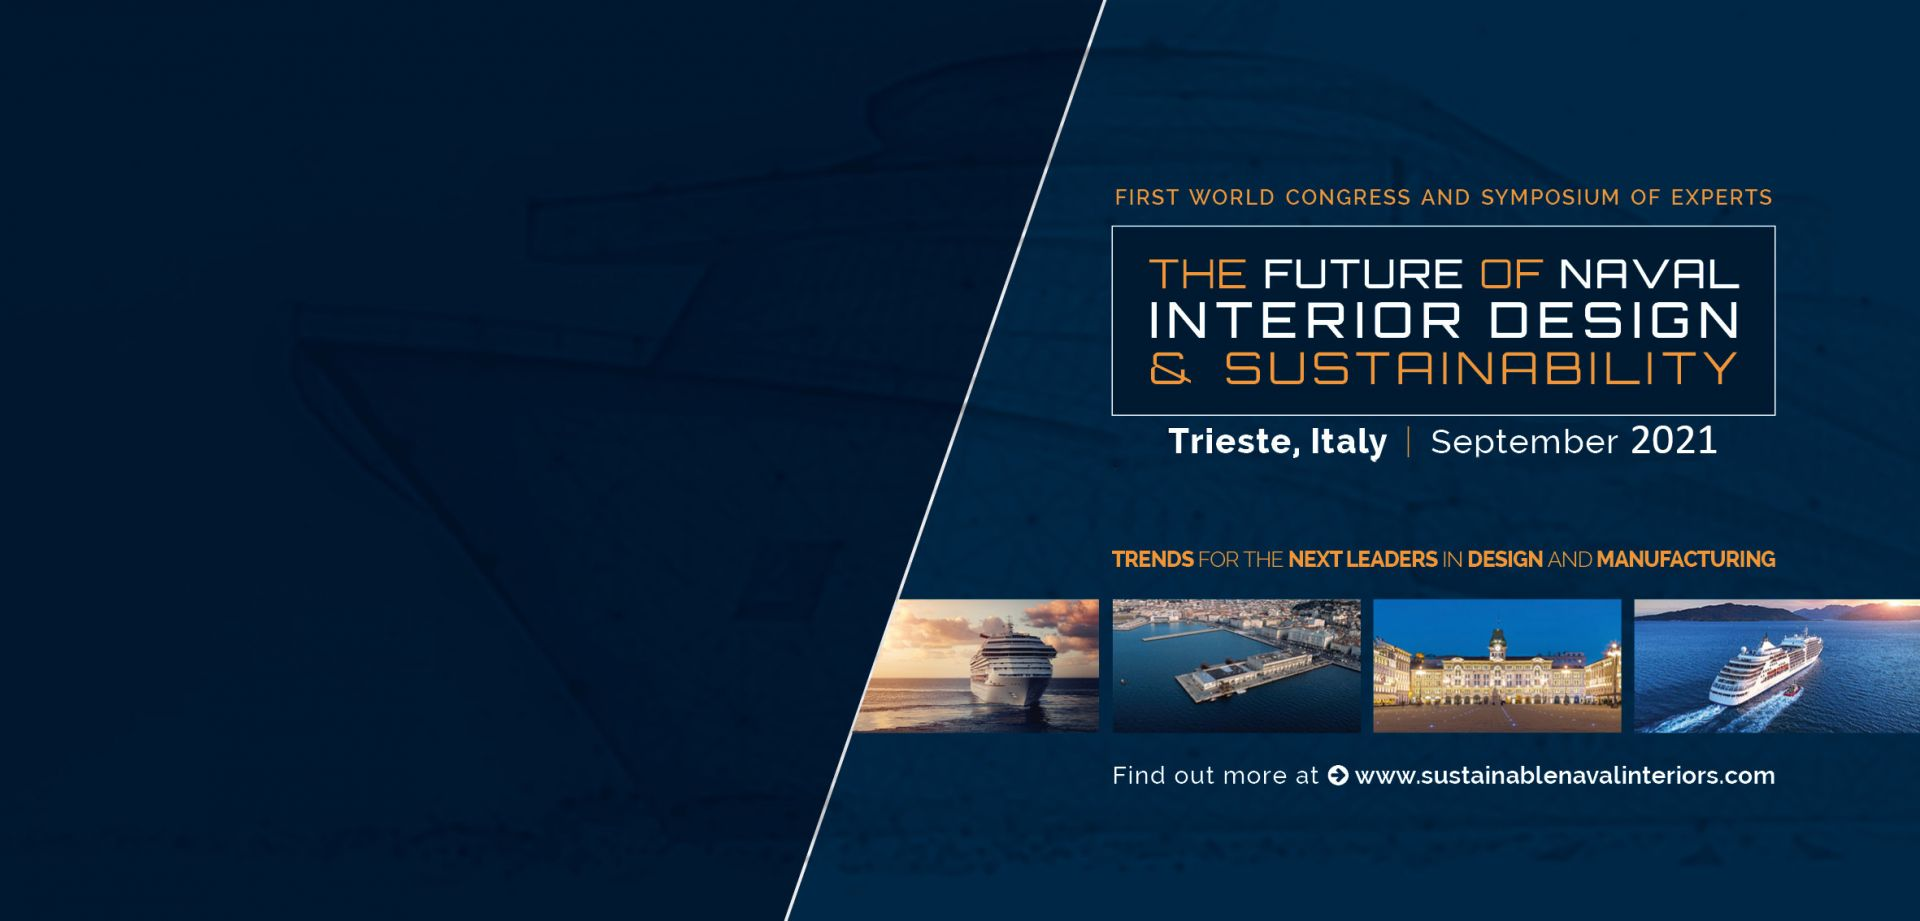 THE FUTURE OF NAVAL INTERIOR DESIGN AND SUSTAINABILITY